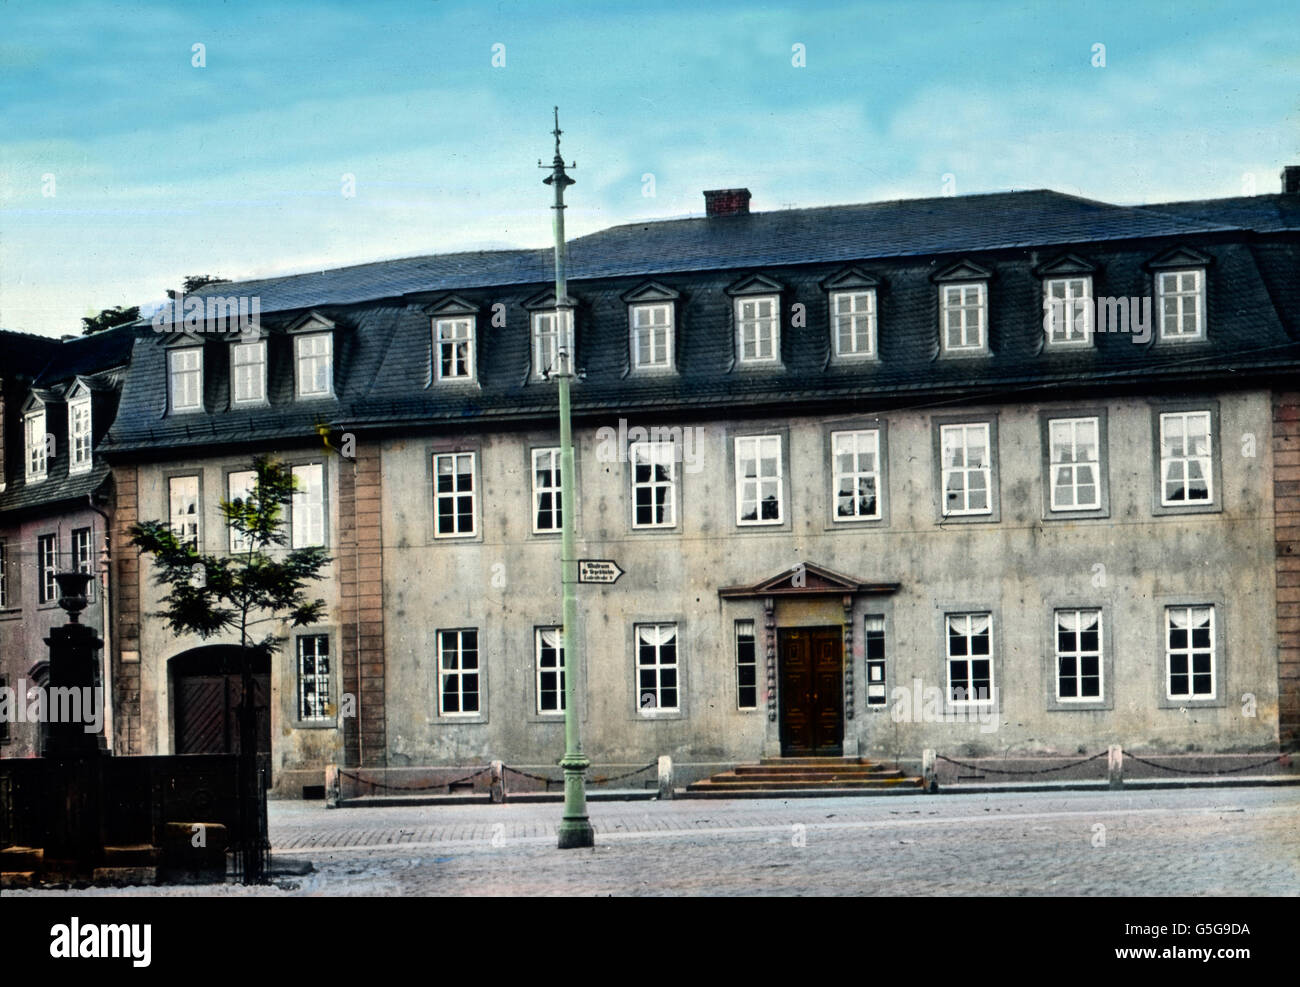 Goethe Nationalmuseum in Weimar. National Goethe Museum at Weimar. architecture, buidling, culture, archive, archival, - Stock Image